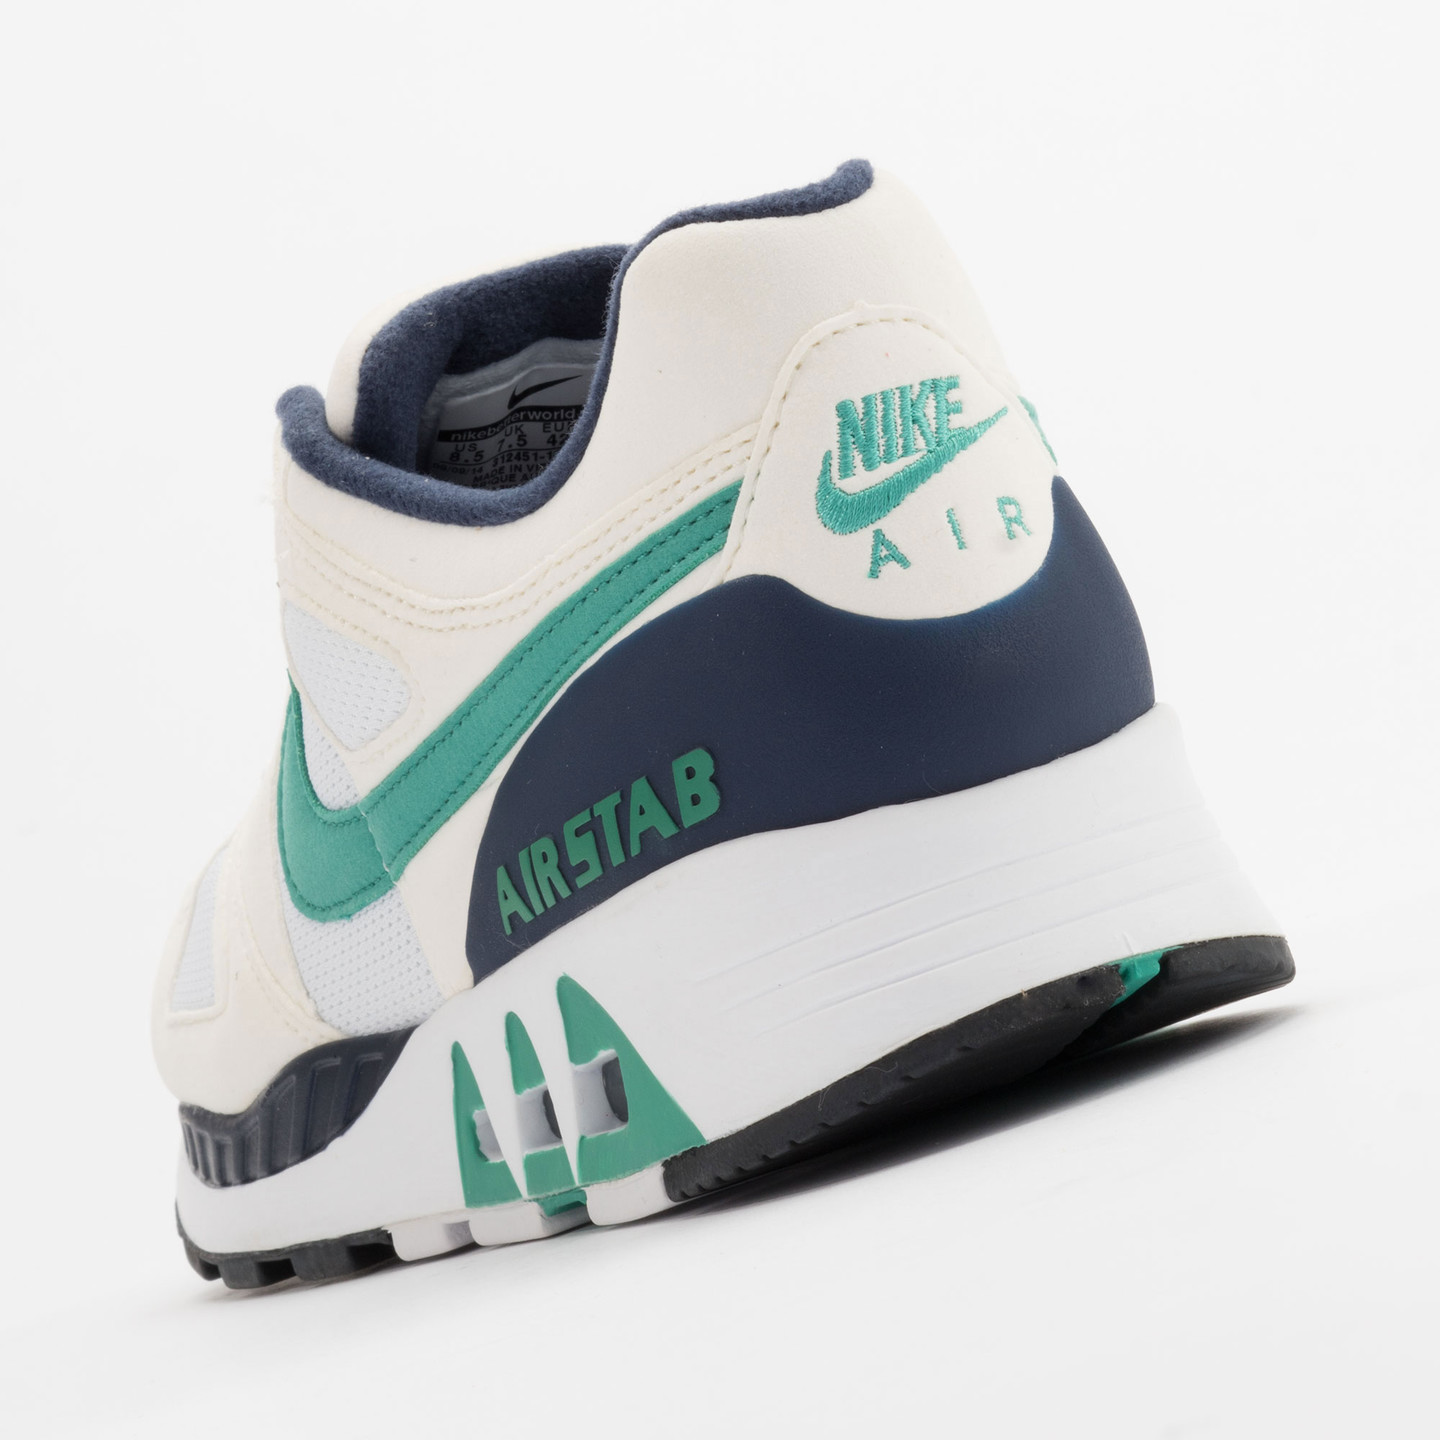 Nike Air Stab White/Emerald Green-Sl-Mid Nvy 312451-100-38.5